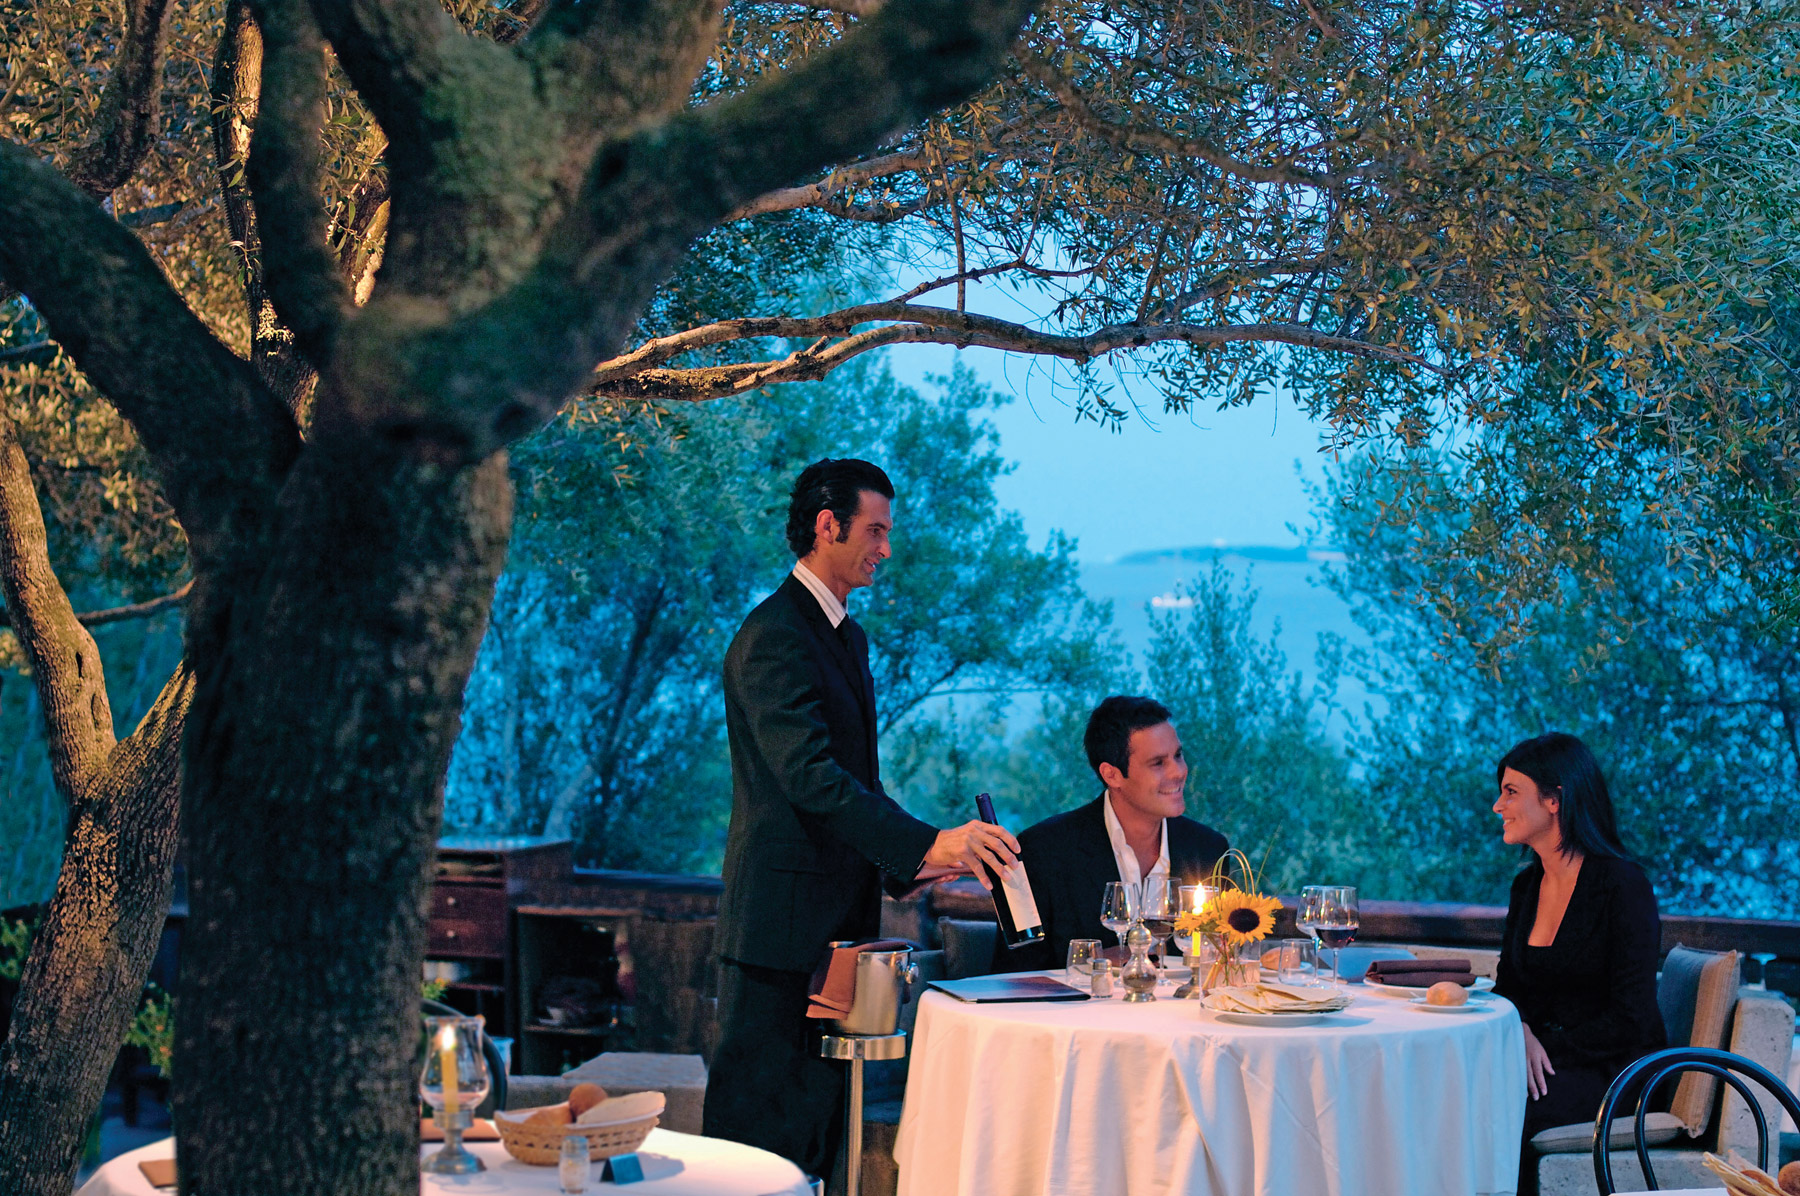 Dining at Hotel Capo d'Orso Thalasso & Spa